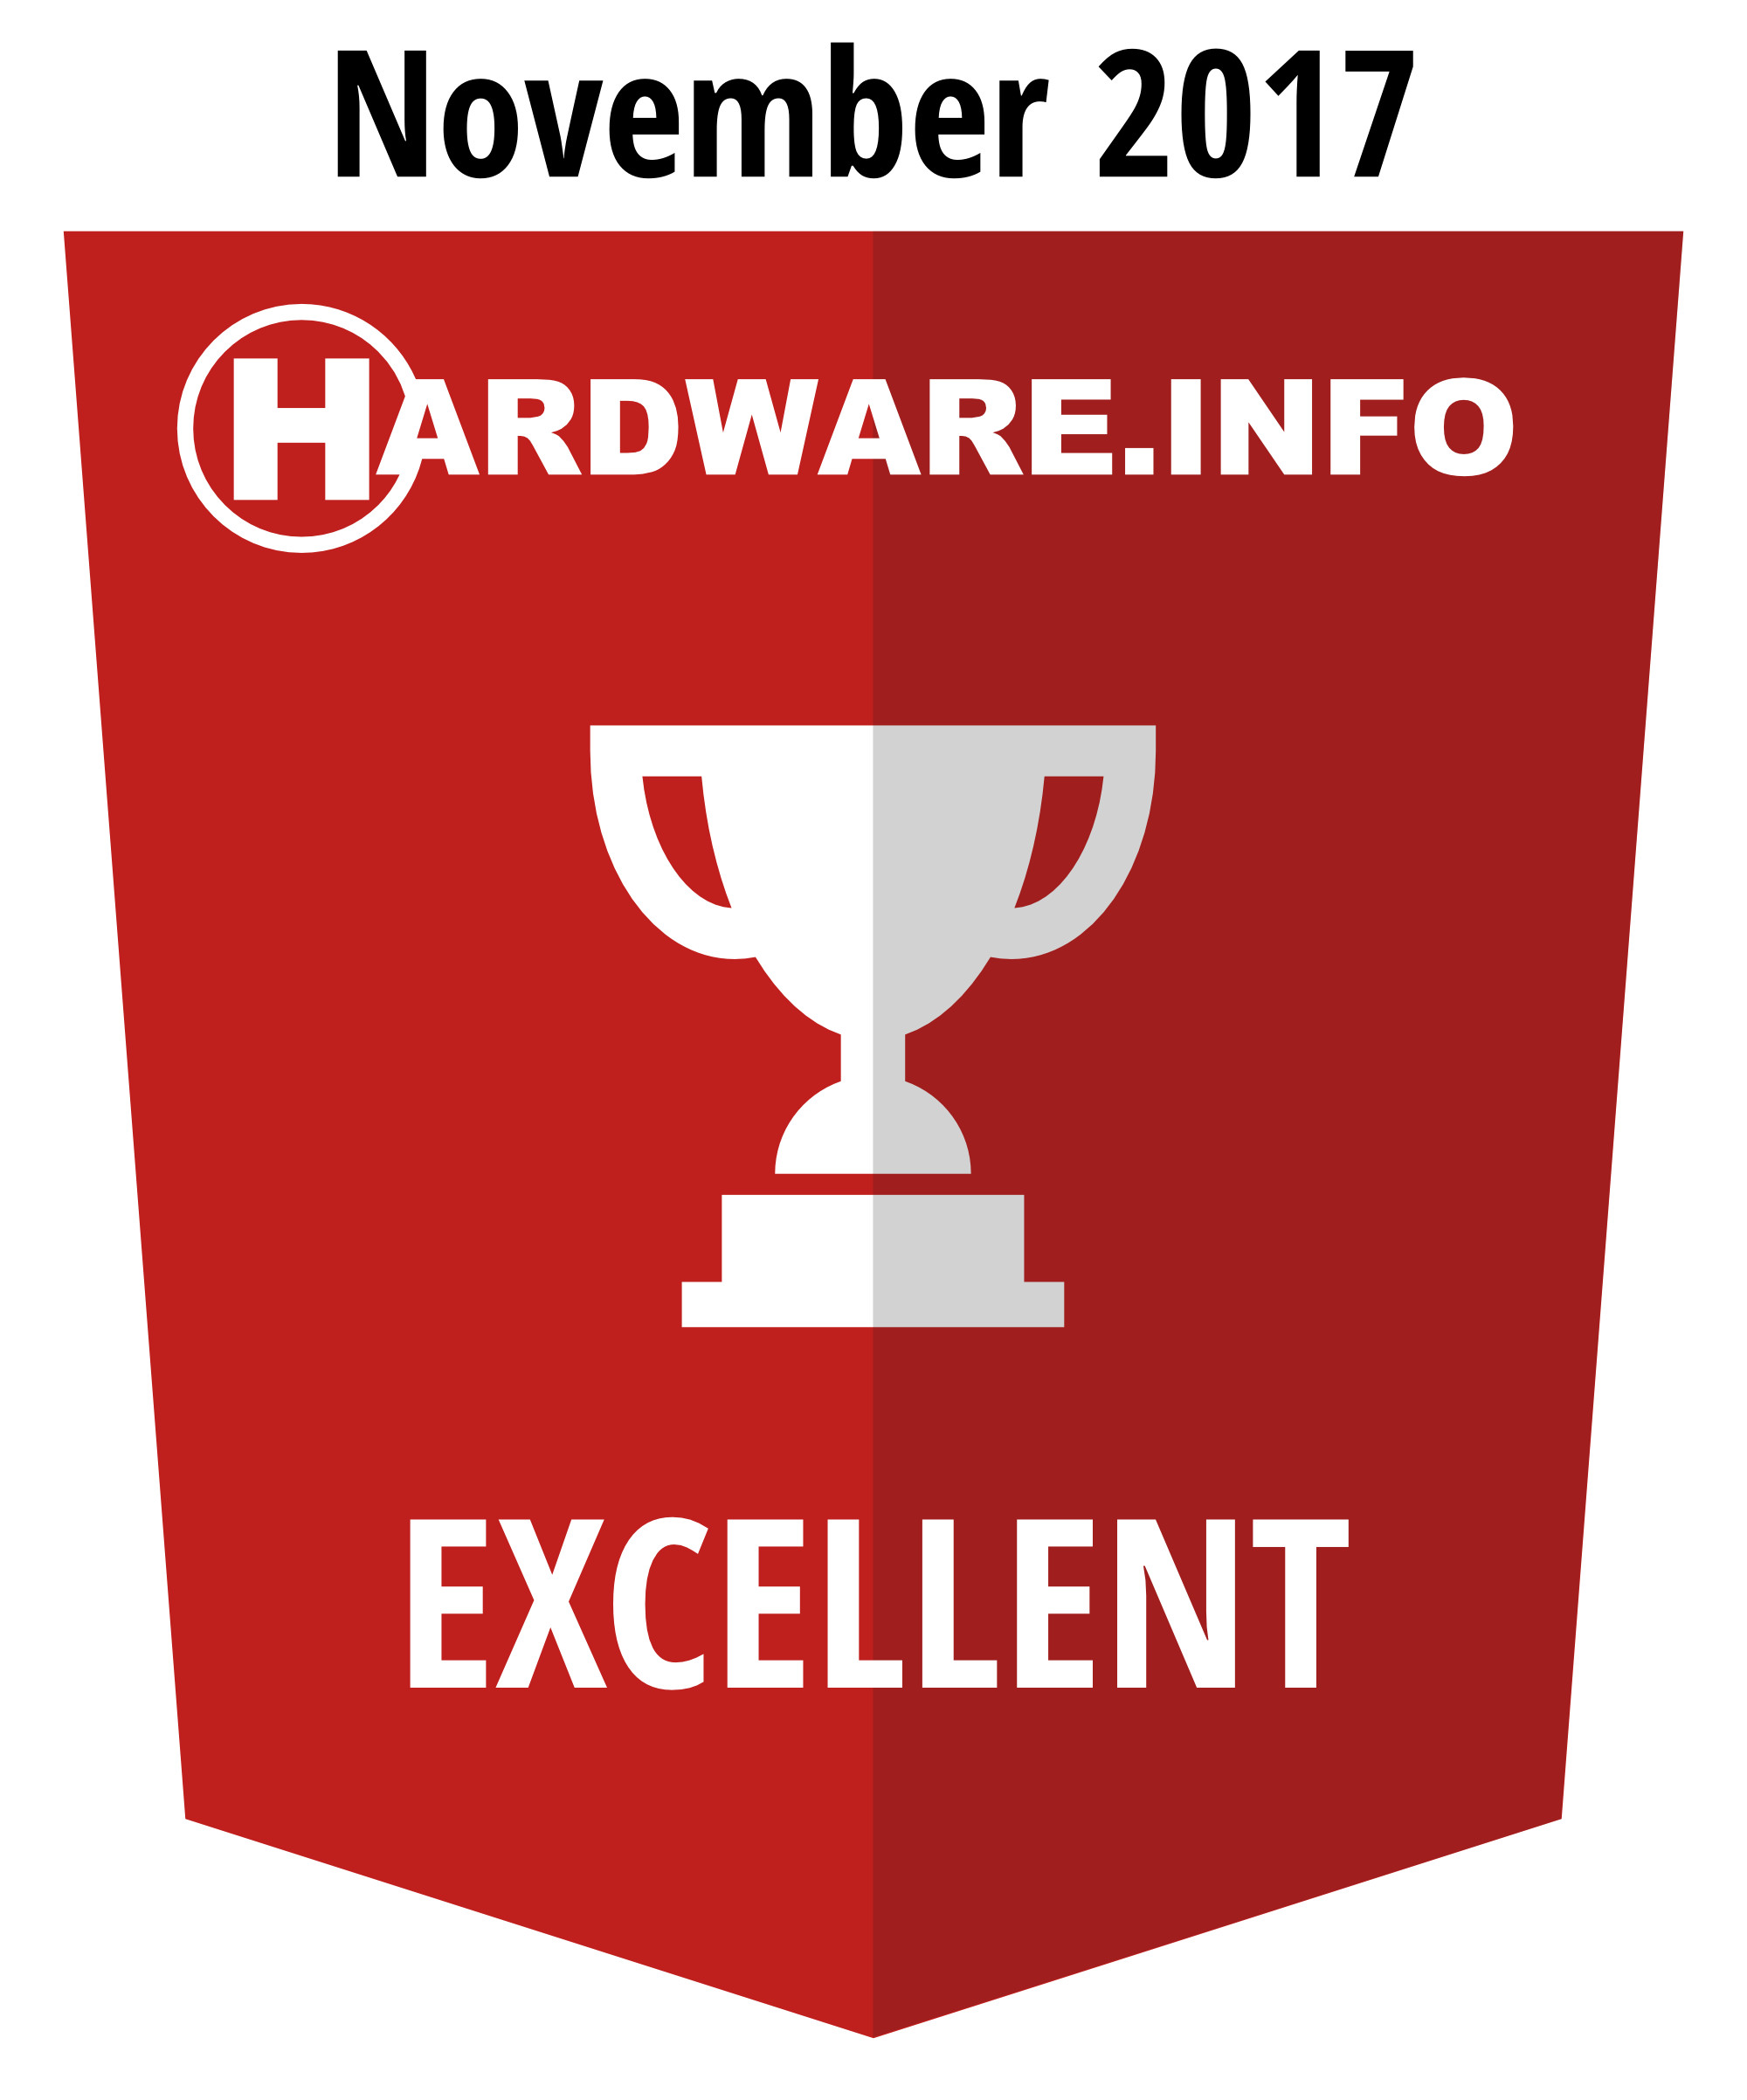 Hardware.info Excellent award 11-2017